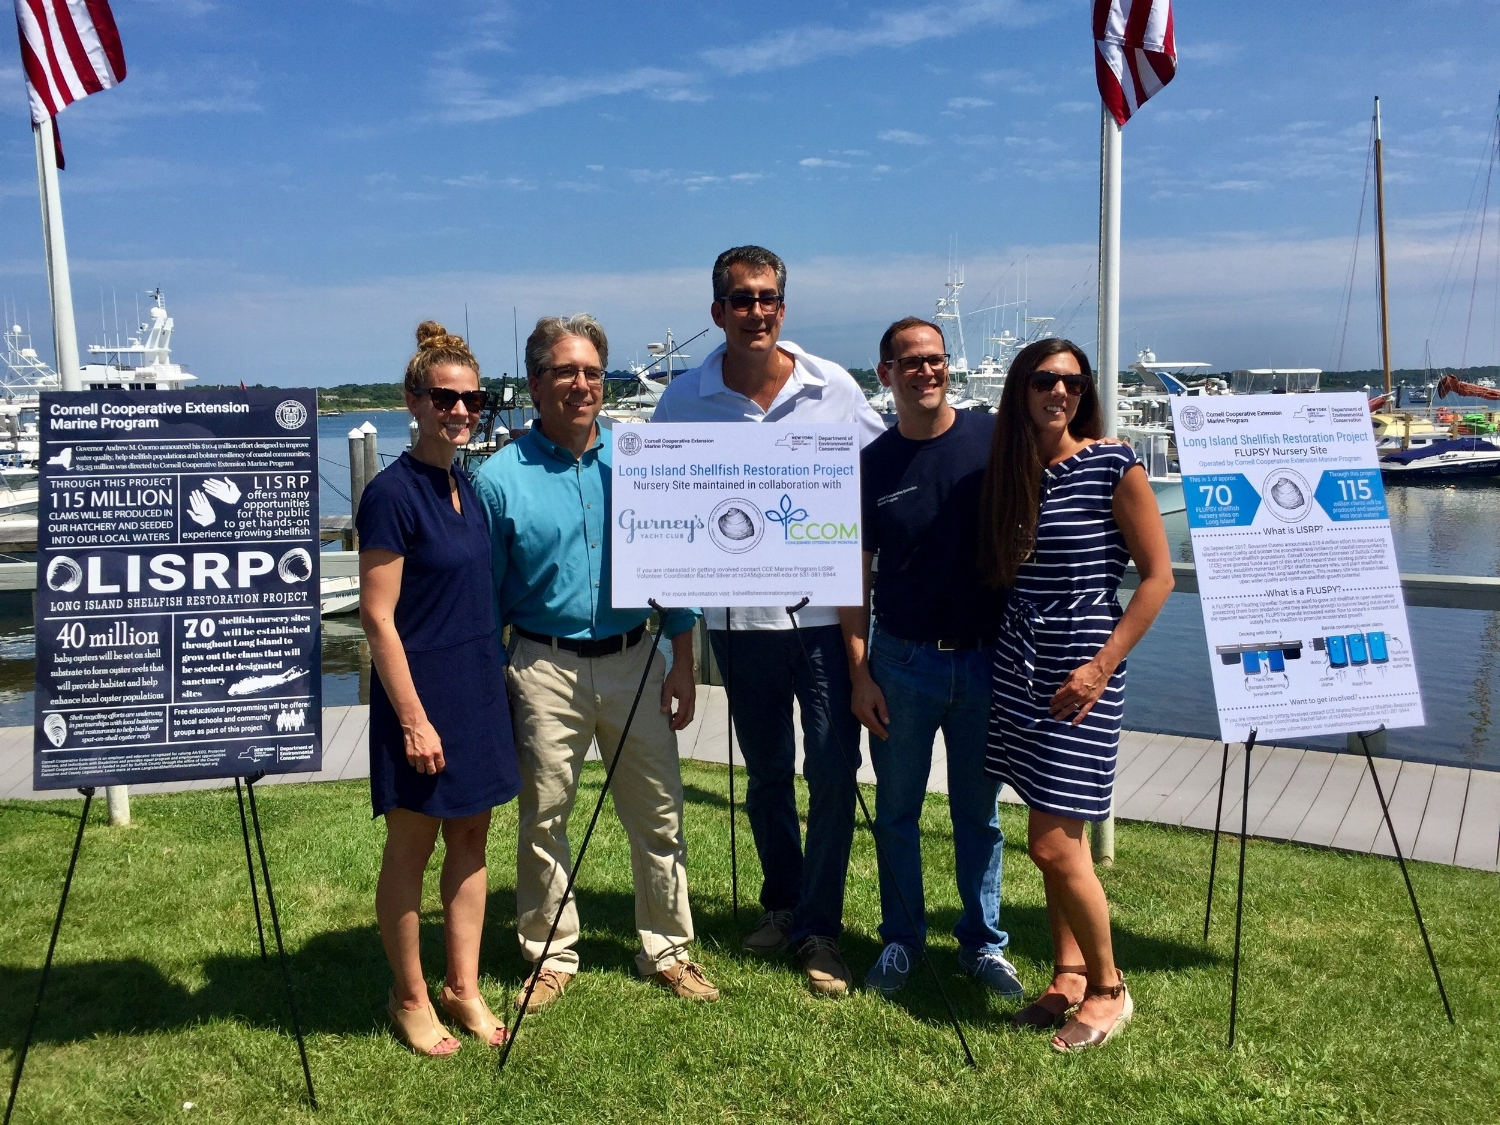 Left Laura Tooman President of Concerned Citizens of Montauk, Christopher Pickerell CCE Marine Programs Director, George Filopoulos President of Gurney's Resorts, Lorne Brousseau CCE Associate Marine Program Director, and Kim Barbour  Marine Program Outreach Manager